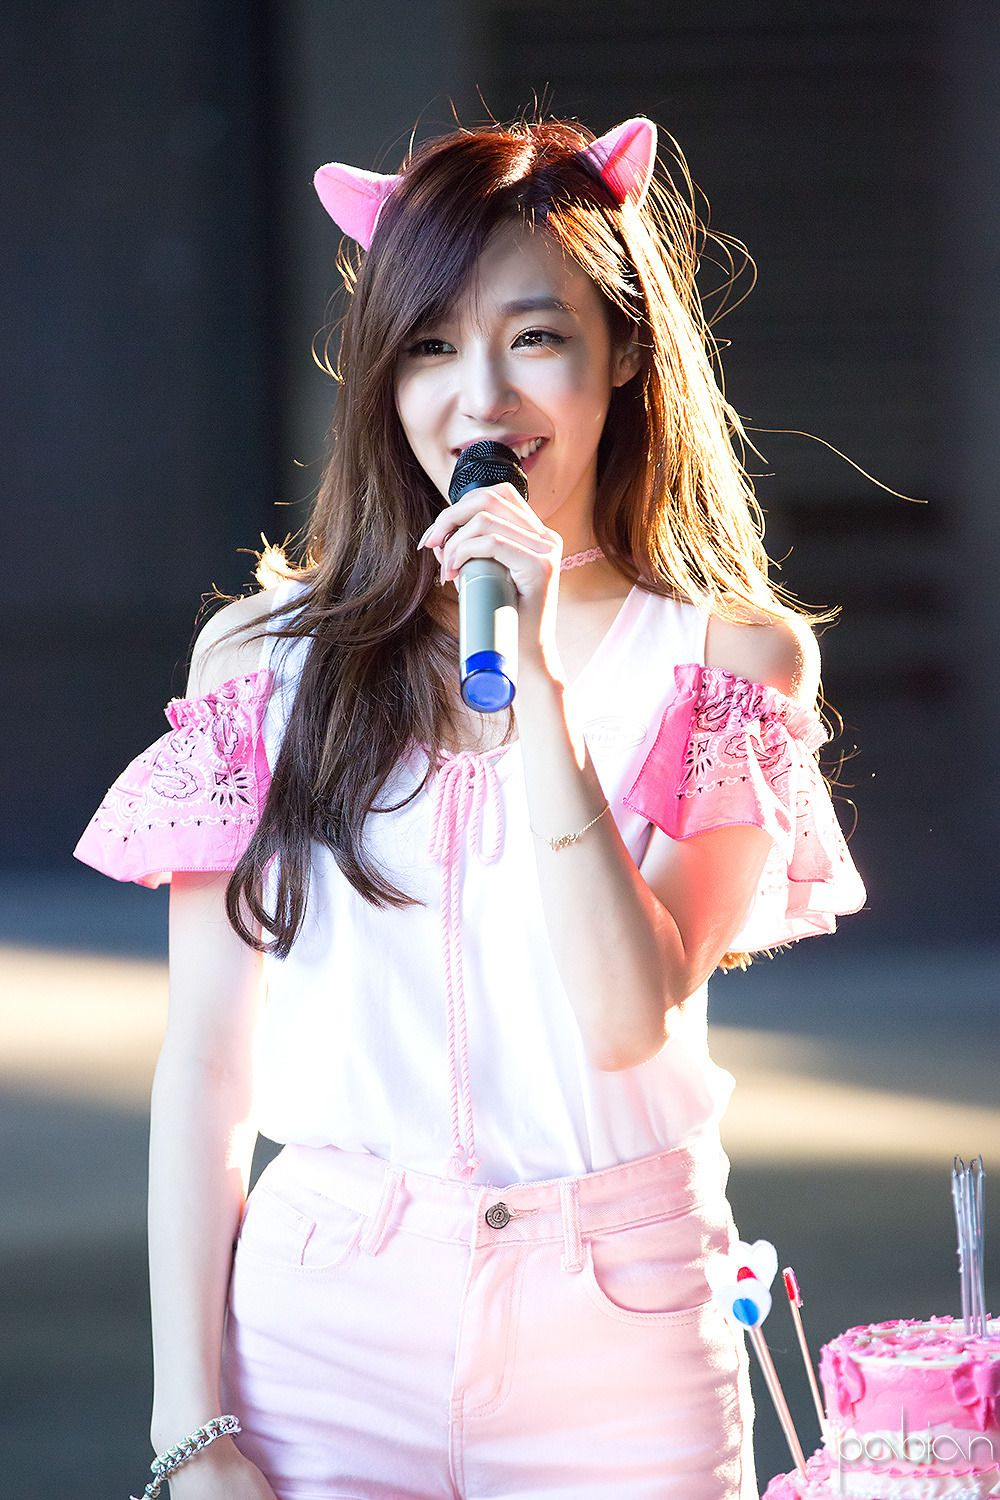 Her True Colors Show In This Picture Pink Girls Generation Tiffany Kpop Girls Girls Generation